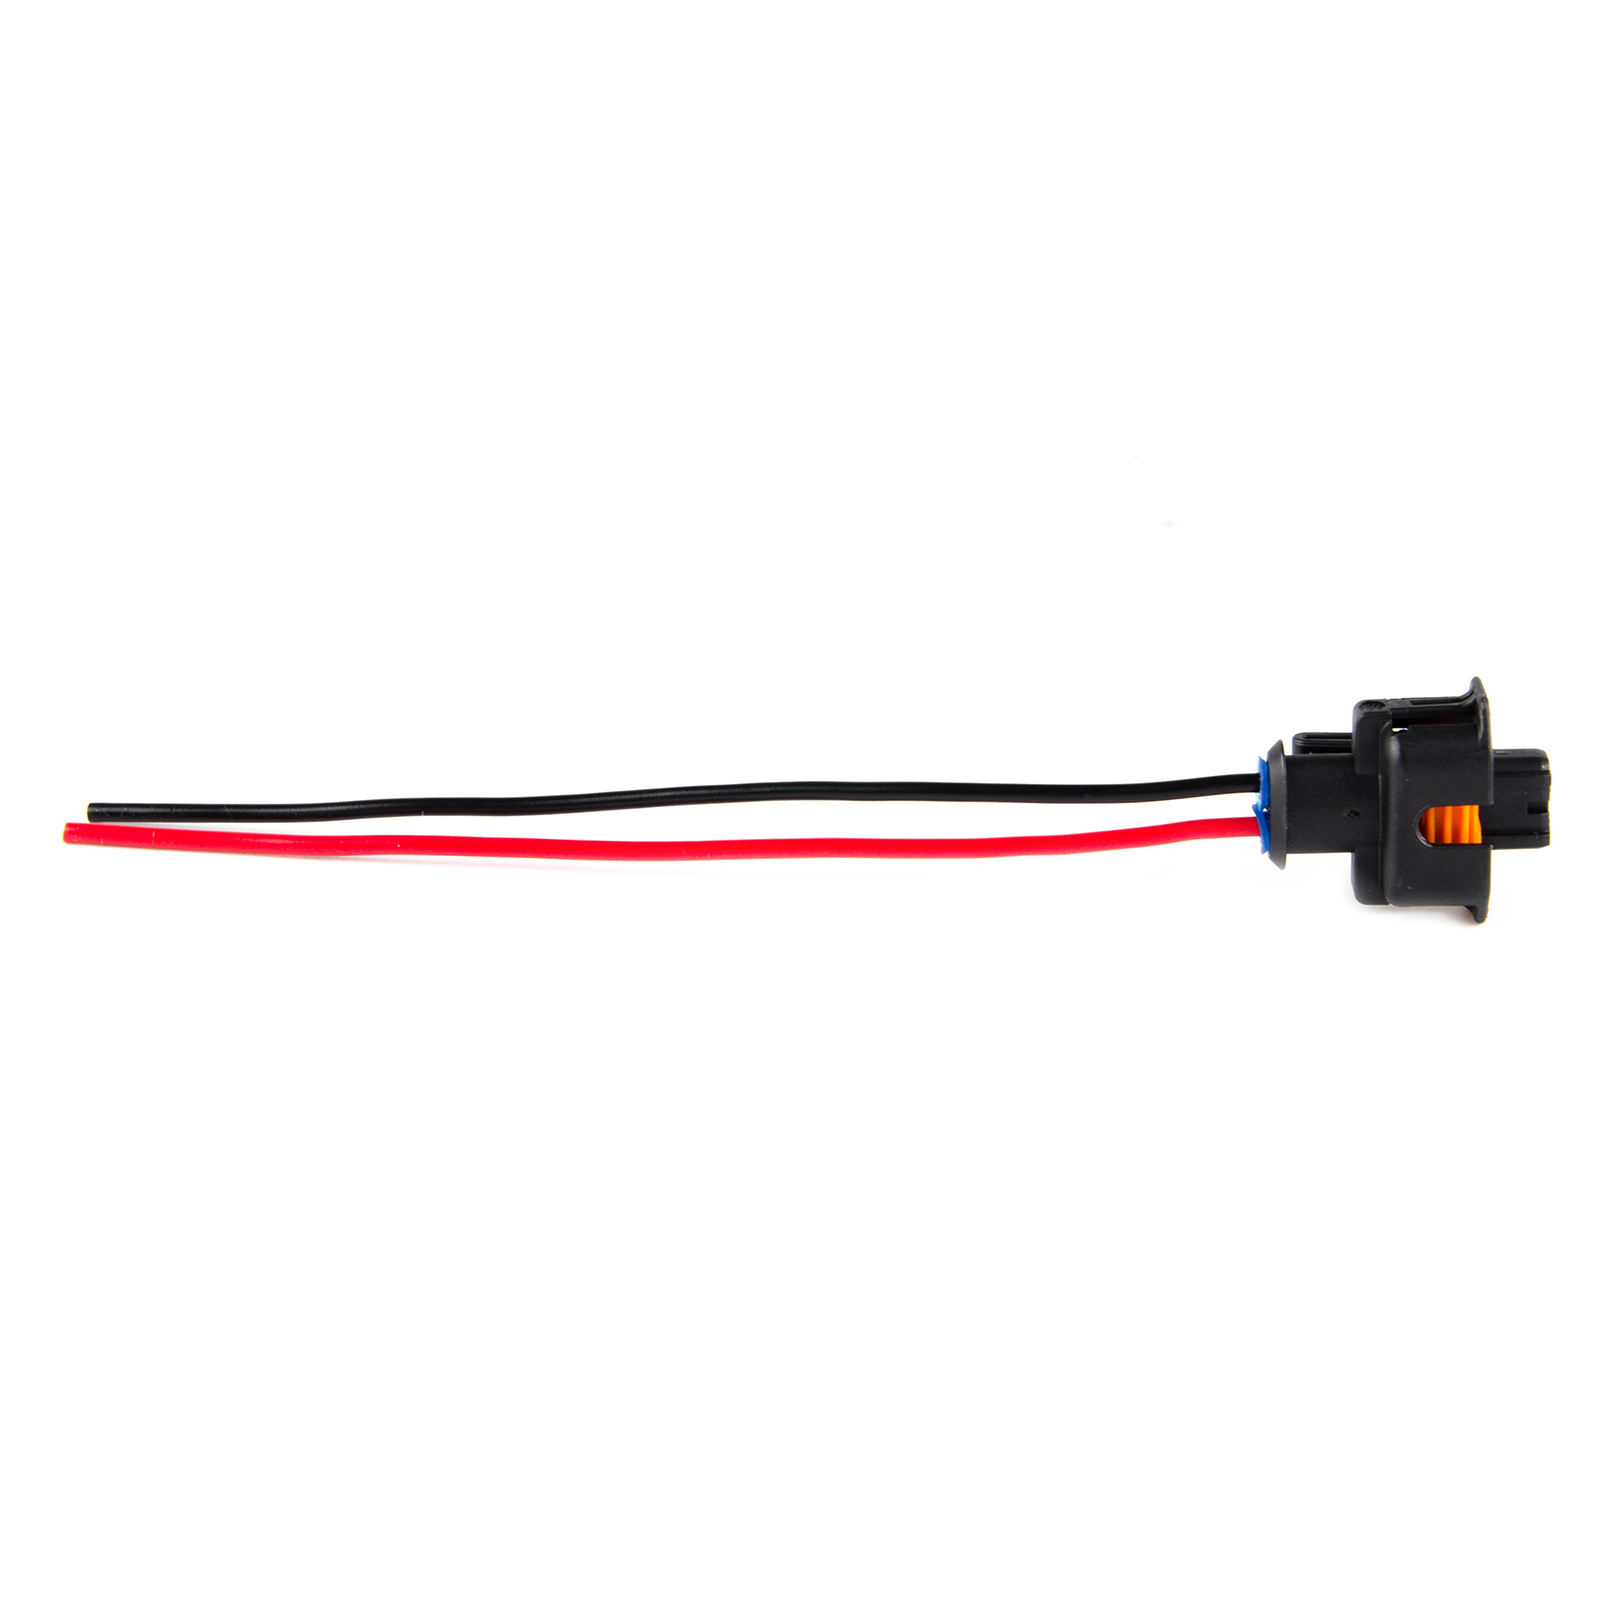 Fuel Injector Connector Harness For Vauxhall Astra Signum Zafira Wire Vectra 19 Diesel Bosch Plug In Motorbike Ingition From Automobiles